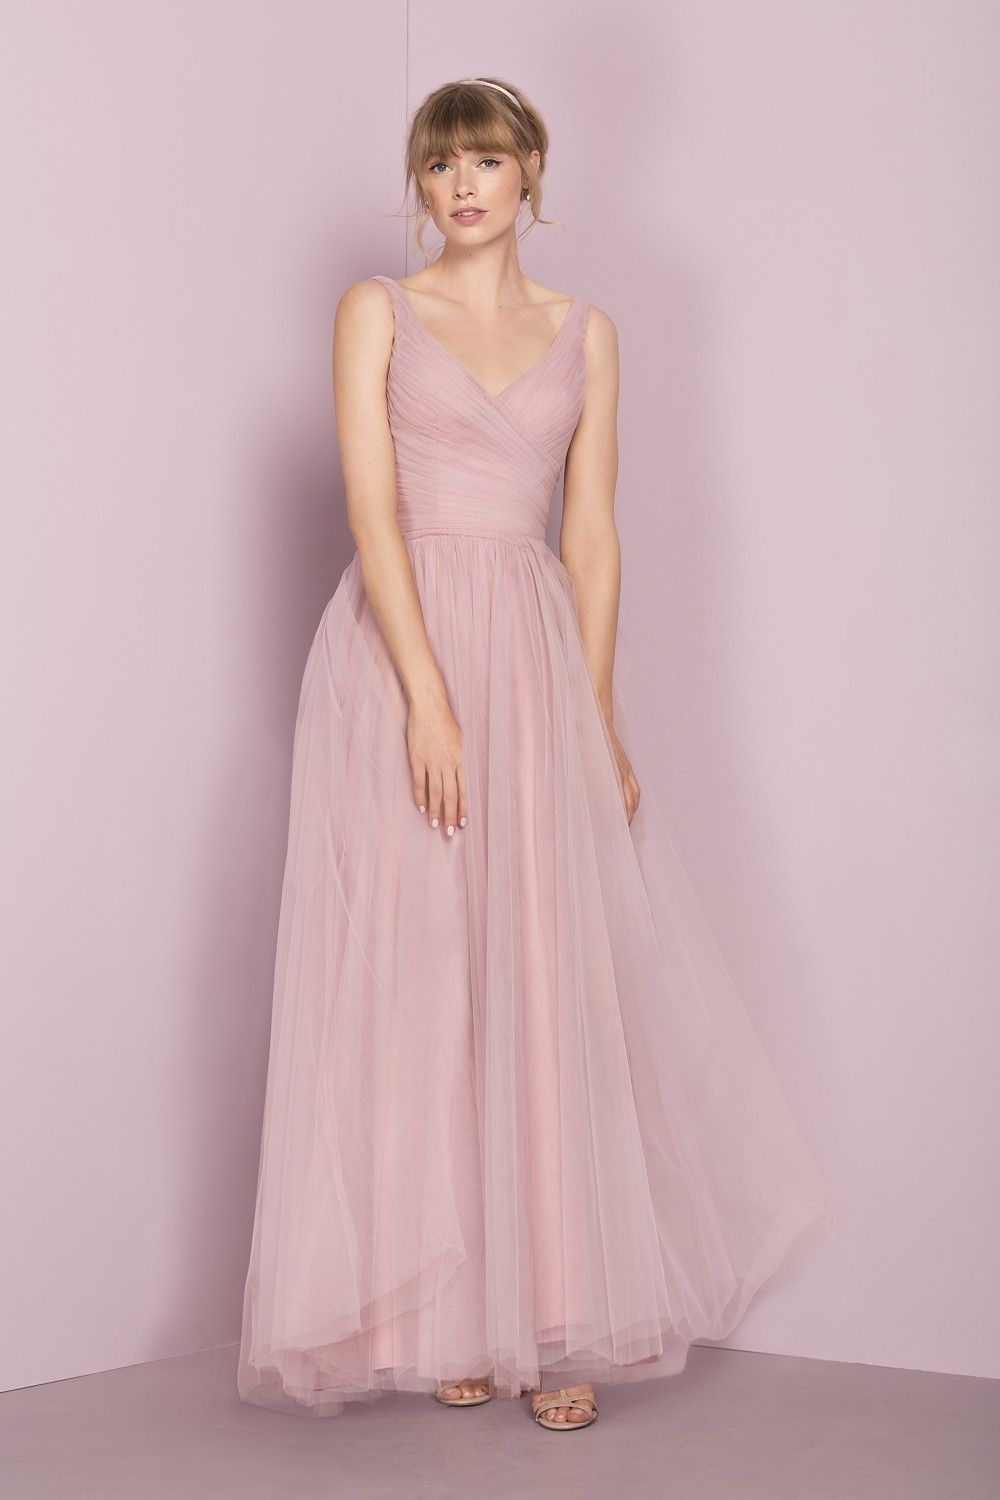 Pleated Floaty Tulle Bridesmaids Dress 12555F | Kelsey Rose | camila ...